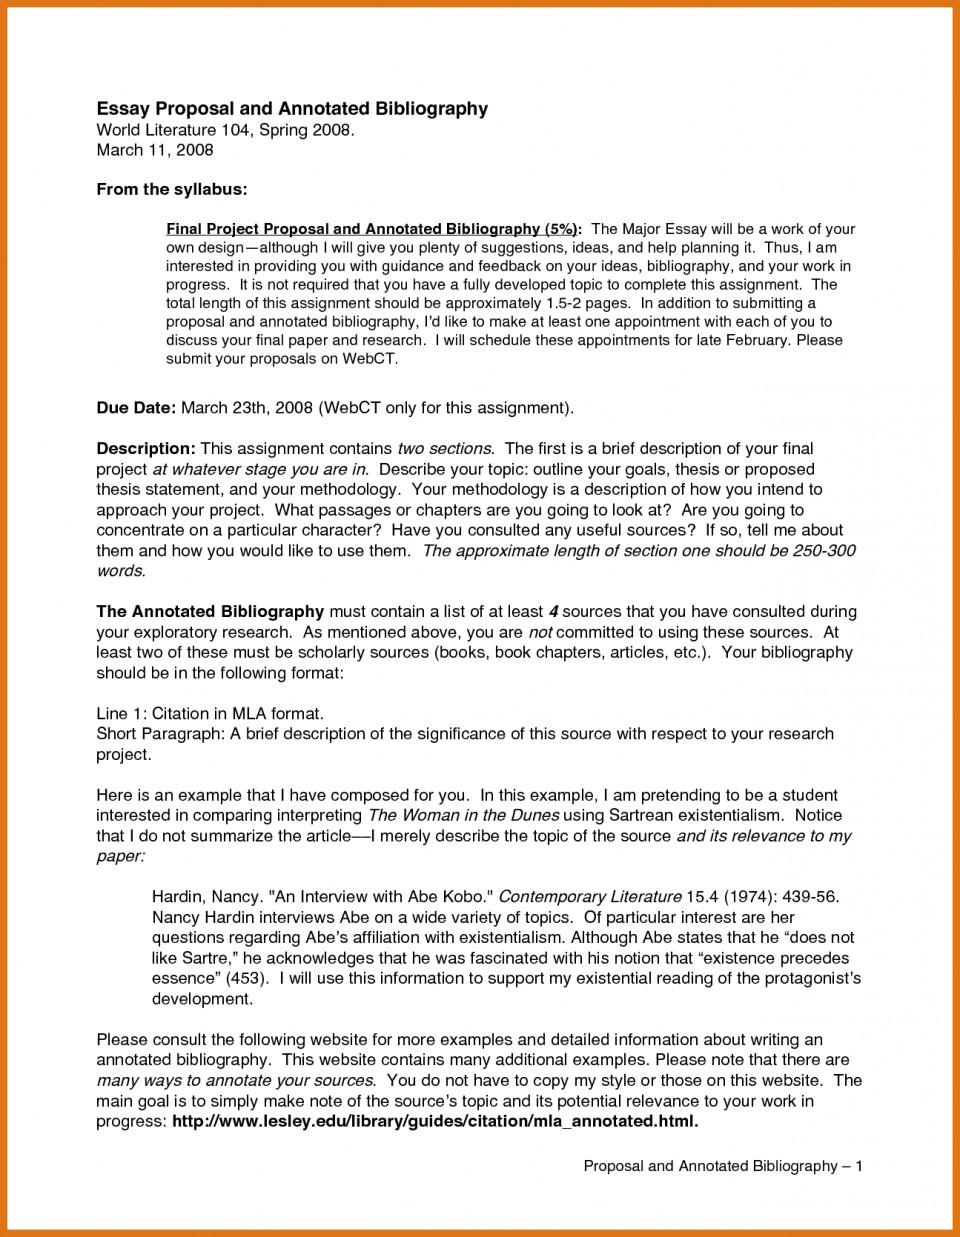 025 Essay Example How To Cite Articles In Bunch Ideas Of Chicago Style Essays Citation Sources Mlaormat Excellent Bibliography Sampleor Research Paper Singular Apa Online Article Title 960